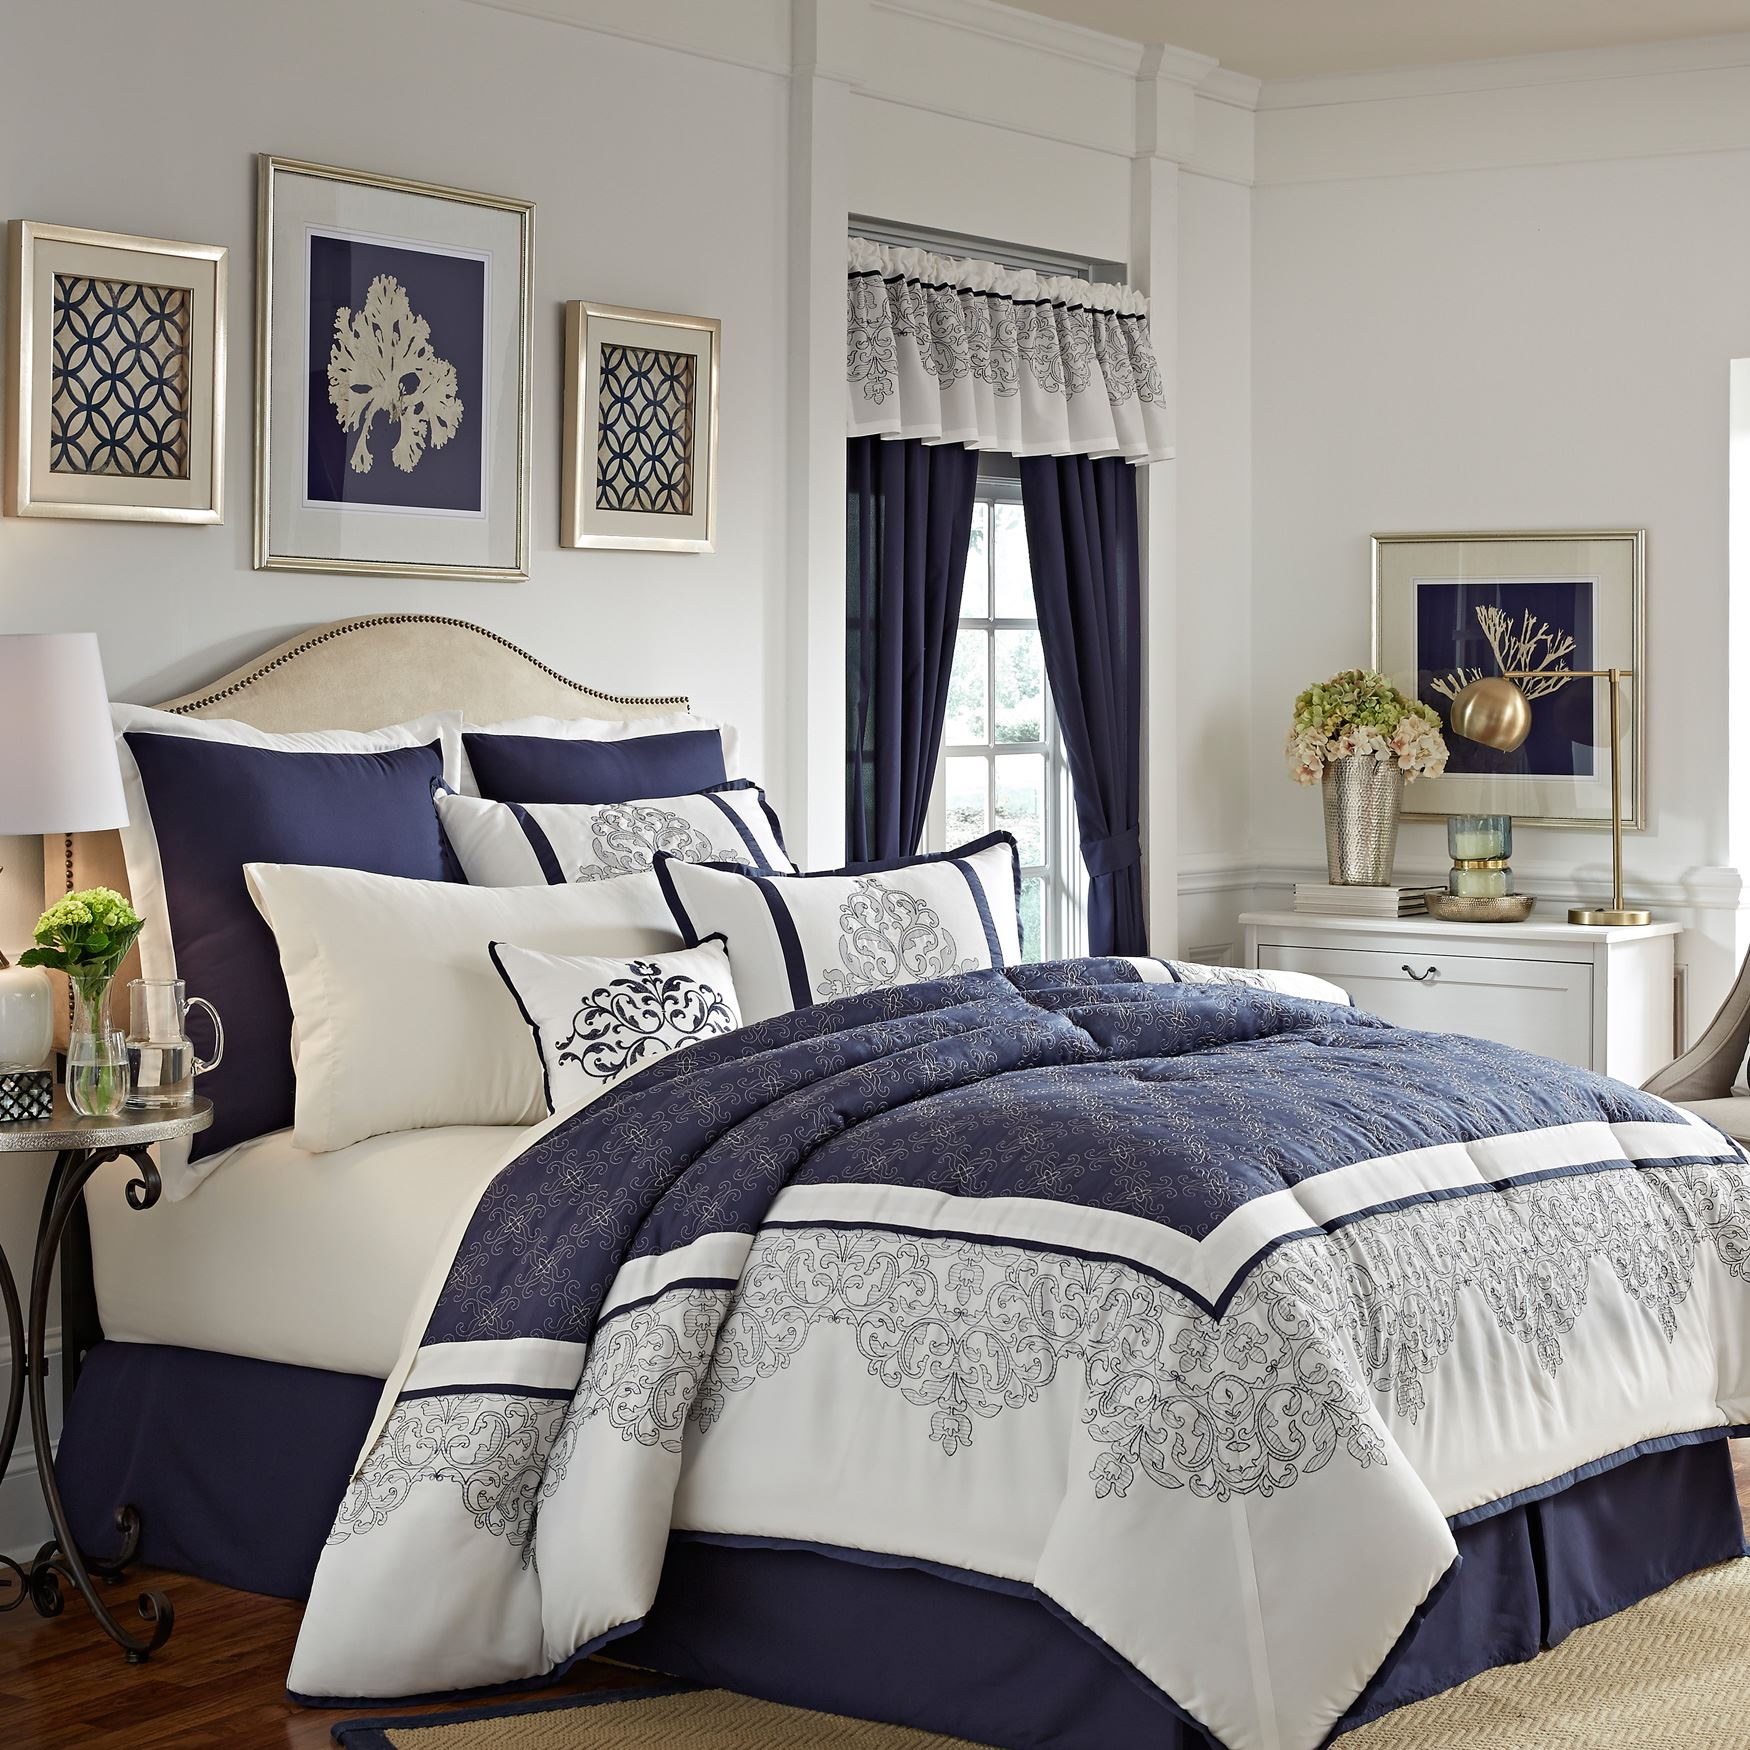 Victoria 8 Pc Comforter Set Bedding Brylane Home